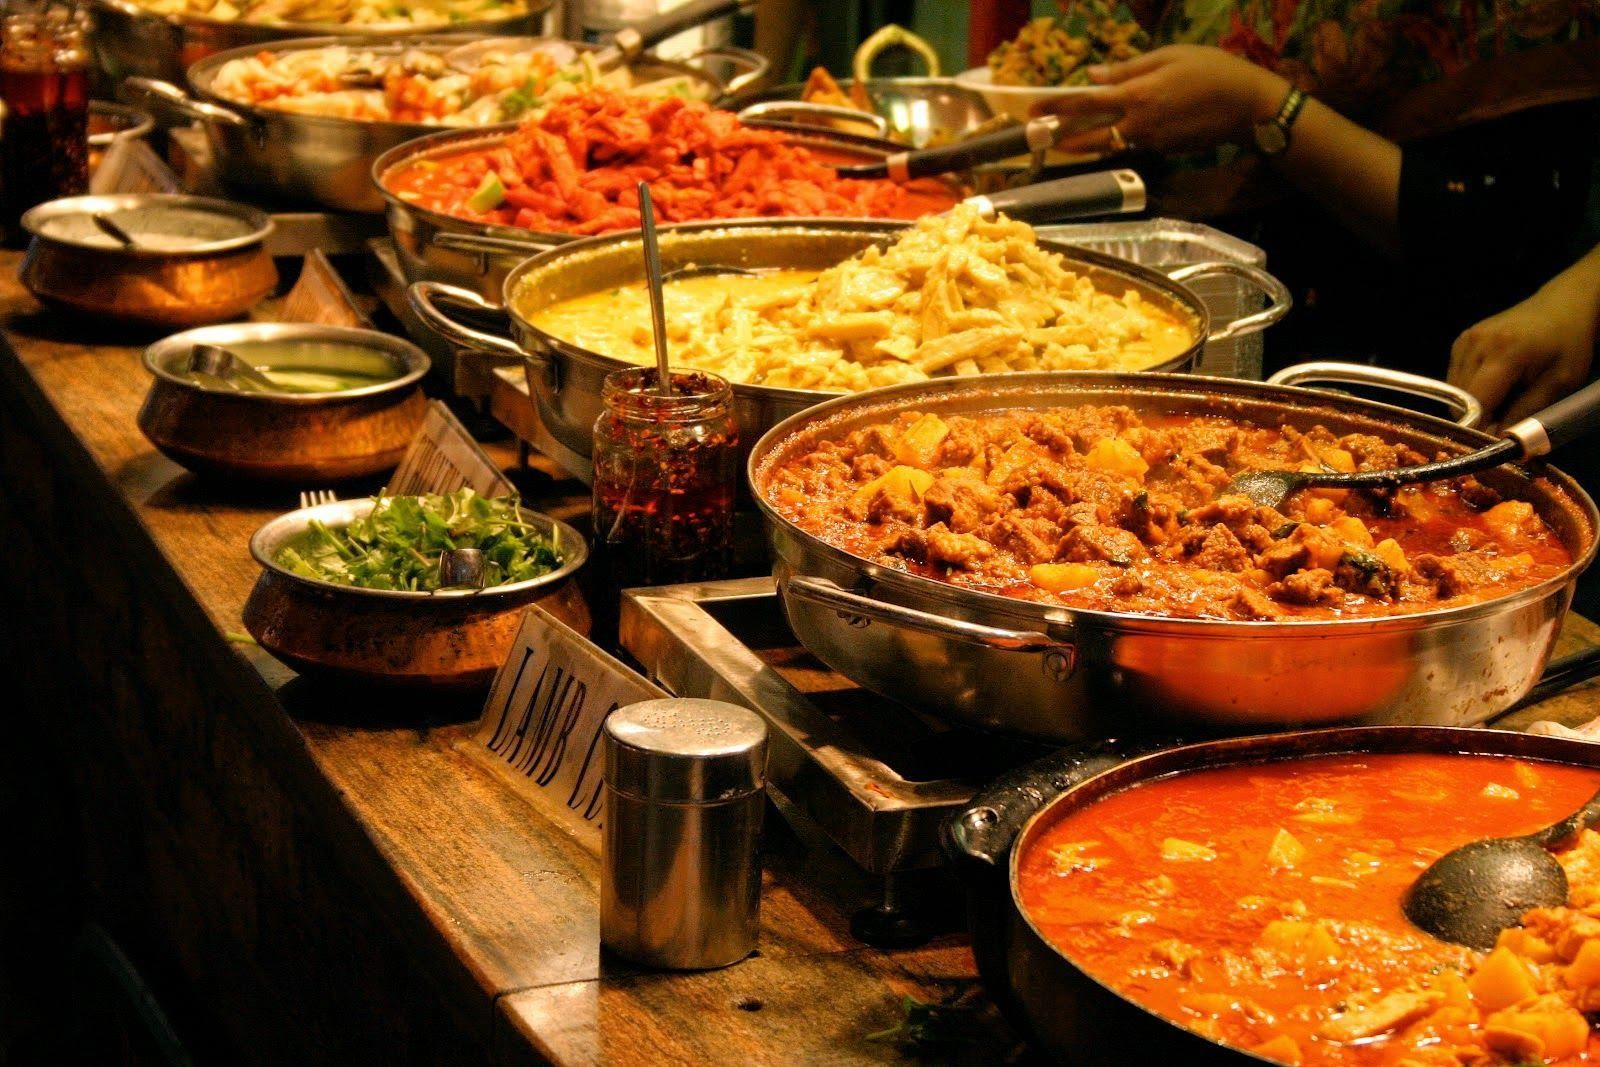 Indian Wedding Food India Palace Caterers Wedding Buffet Food Food Indian Wedding Food